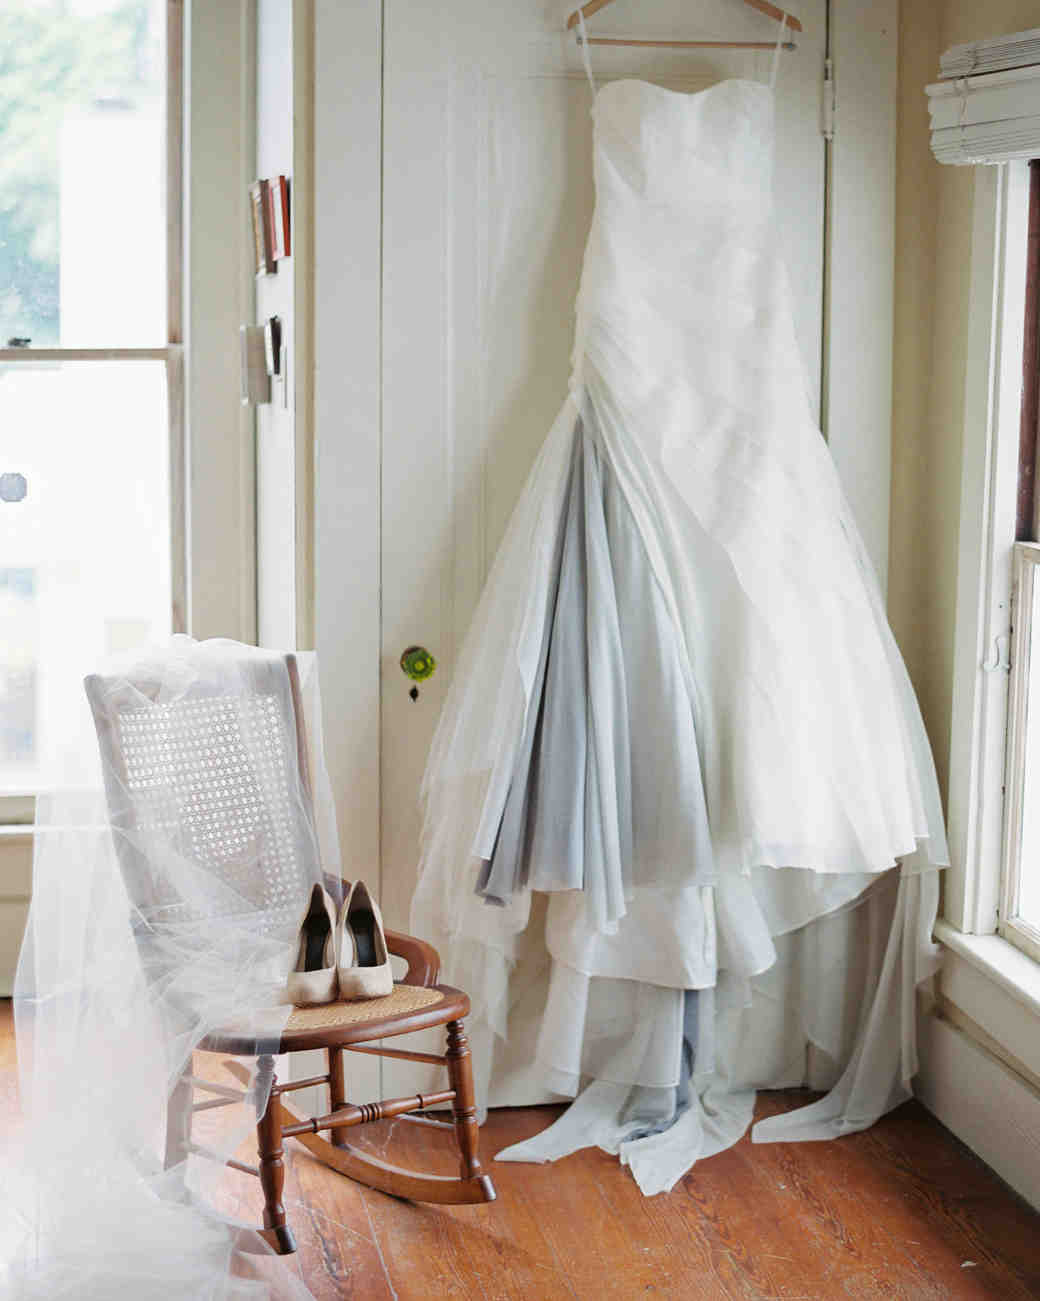 Wedding Gown Hanging in Room